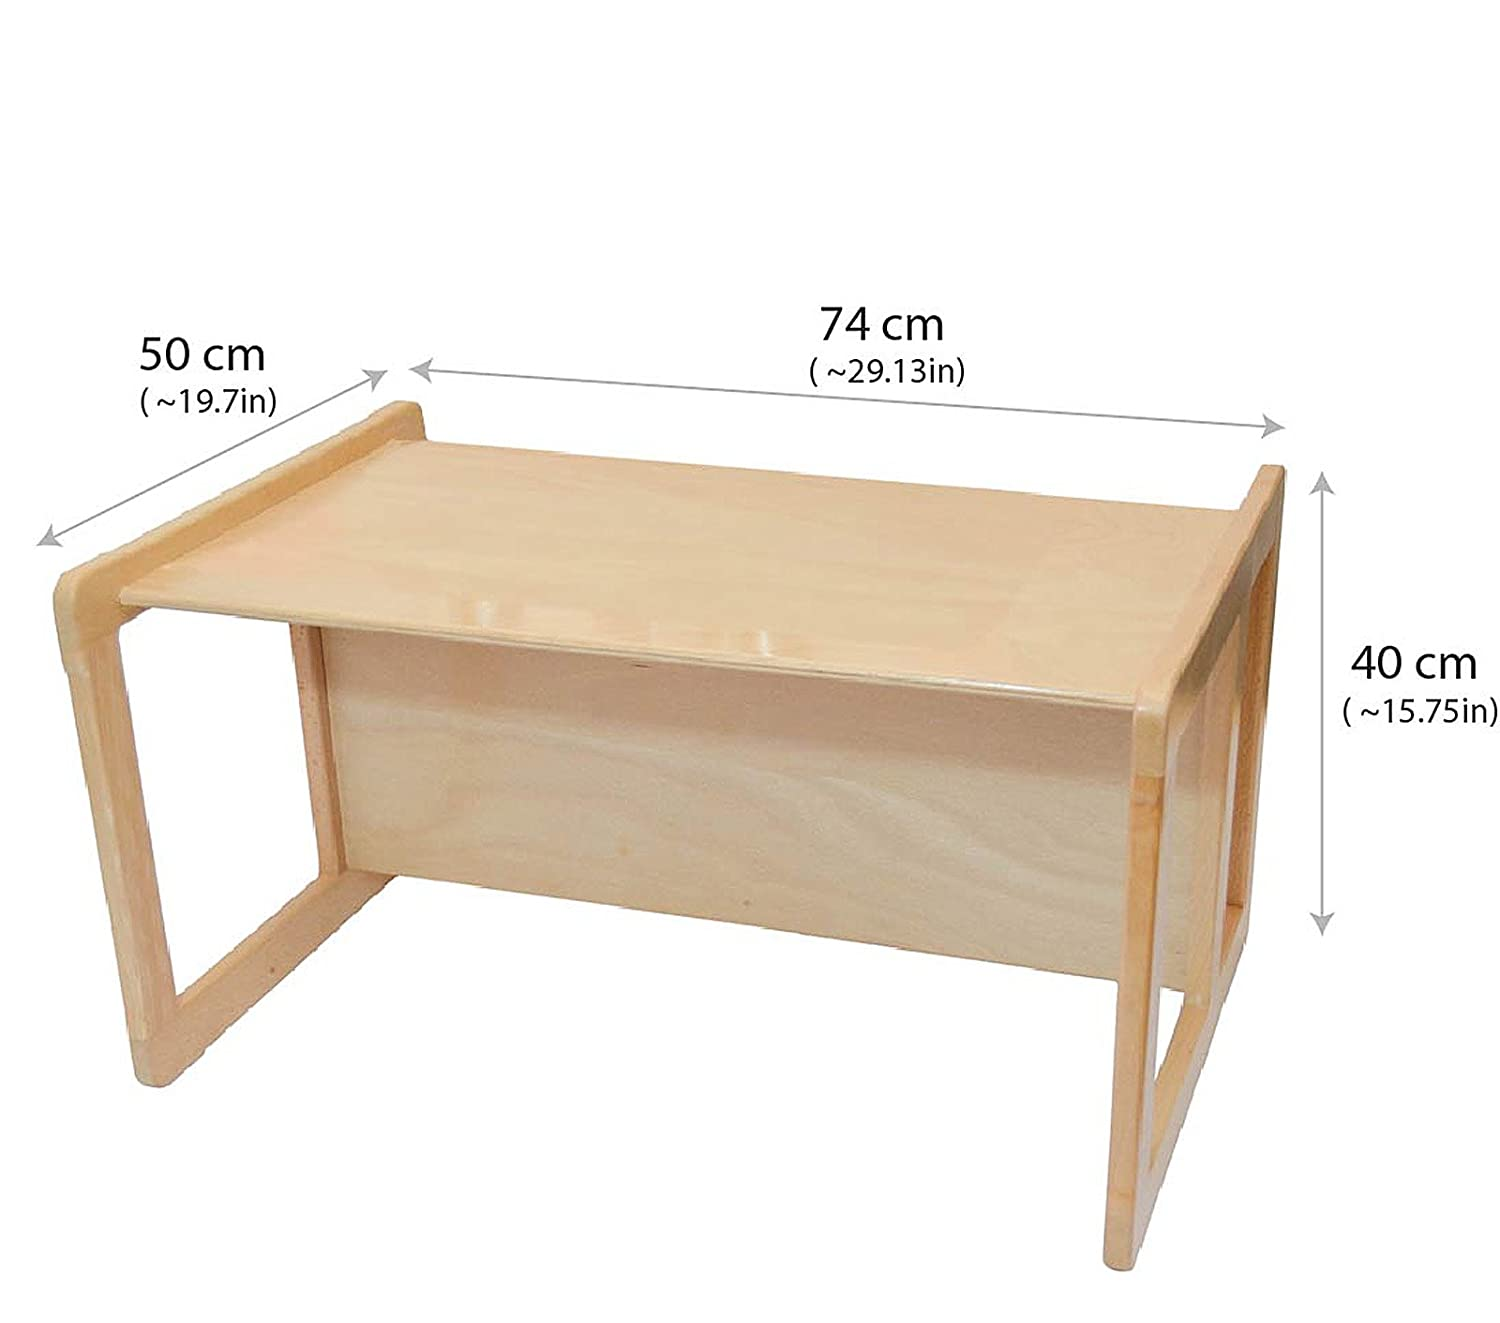 multifunctional furniture. Amazon.com: 3 In 1 Childrens Multifunctional Furniture Set Of 3, Two Small Chairs Or Tables And One Large Bench Table Beech Wood, Natural: Kitchen \u0026 O